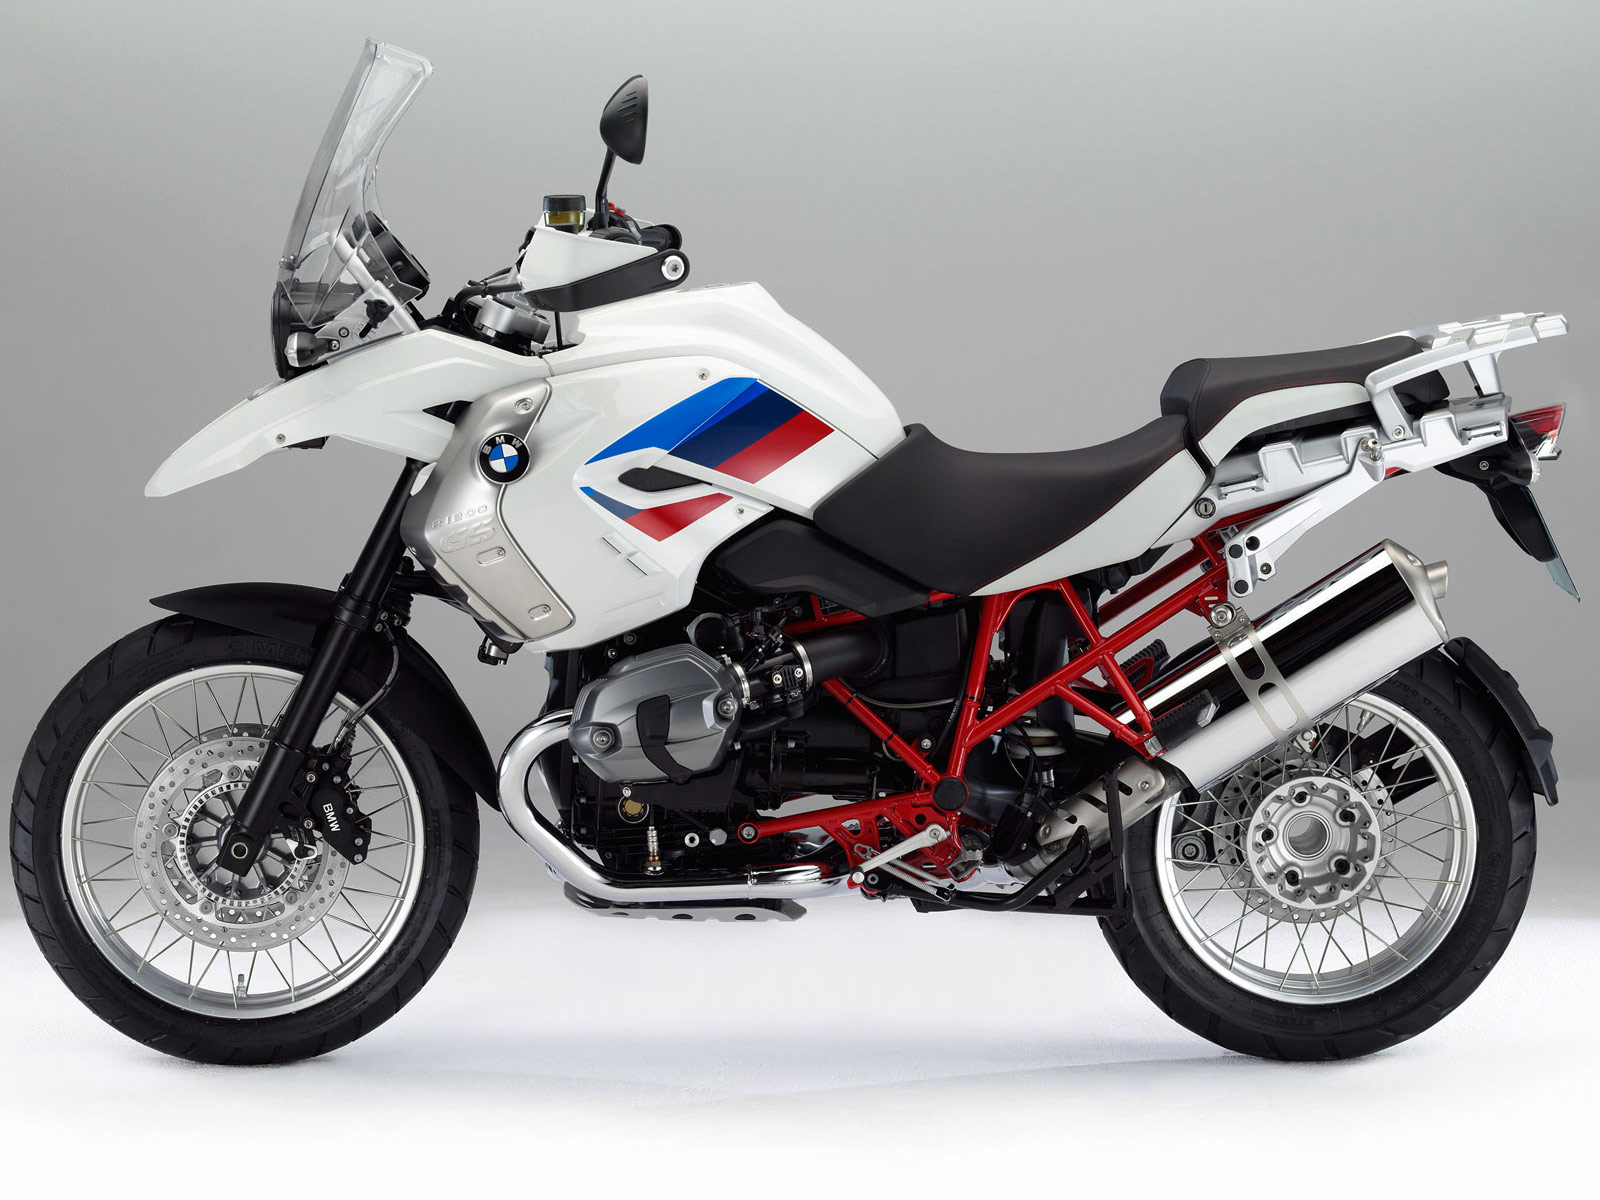 2012_BMW-R1200GS-Rallye_bmw-desktop-wallpapers_2.jpg